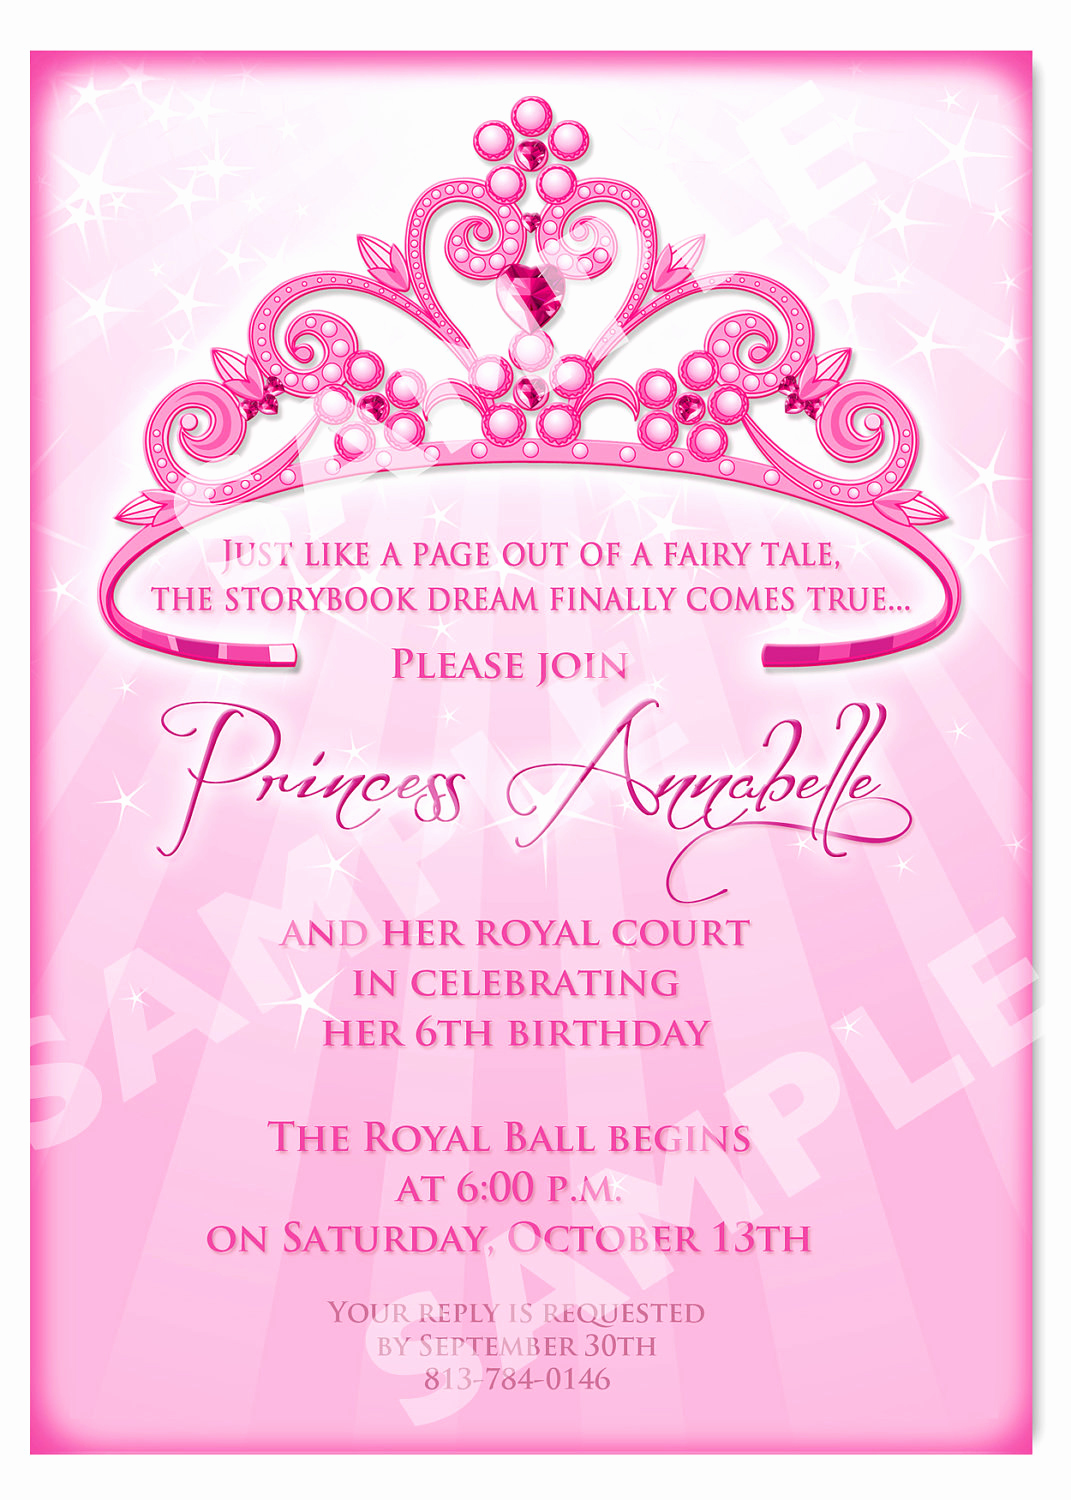 Princess Party Invitation Template Inspirational Princess Birthday Invitation Diy Princess by Artisacreations